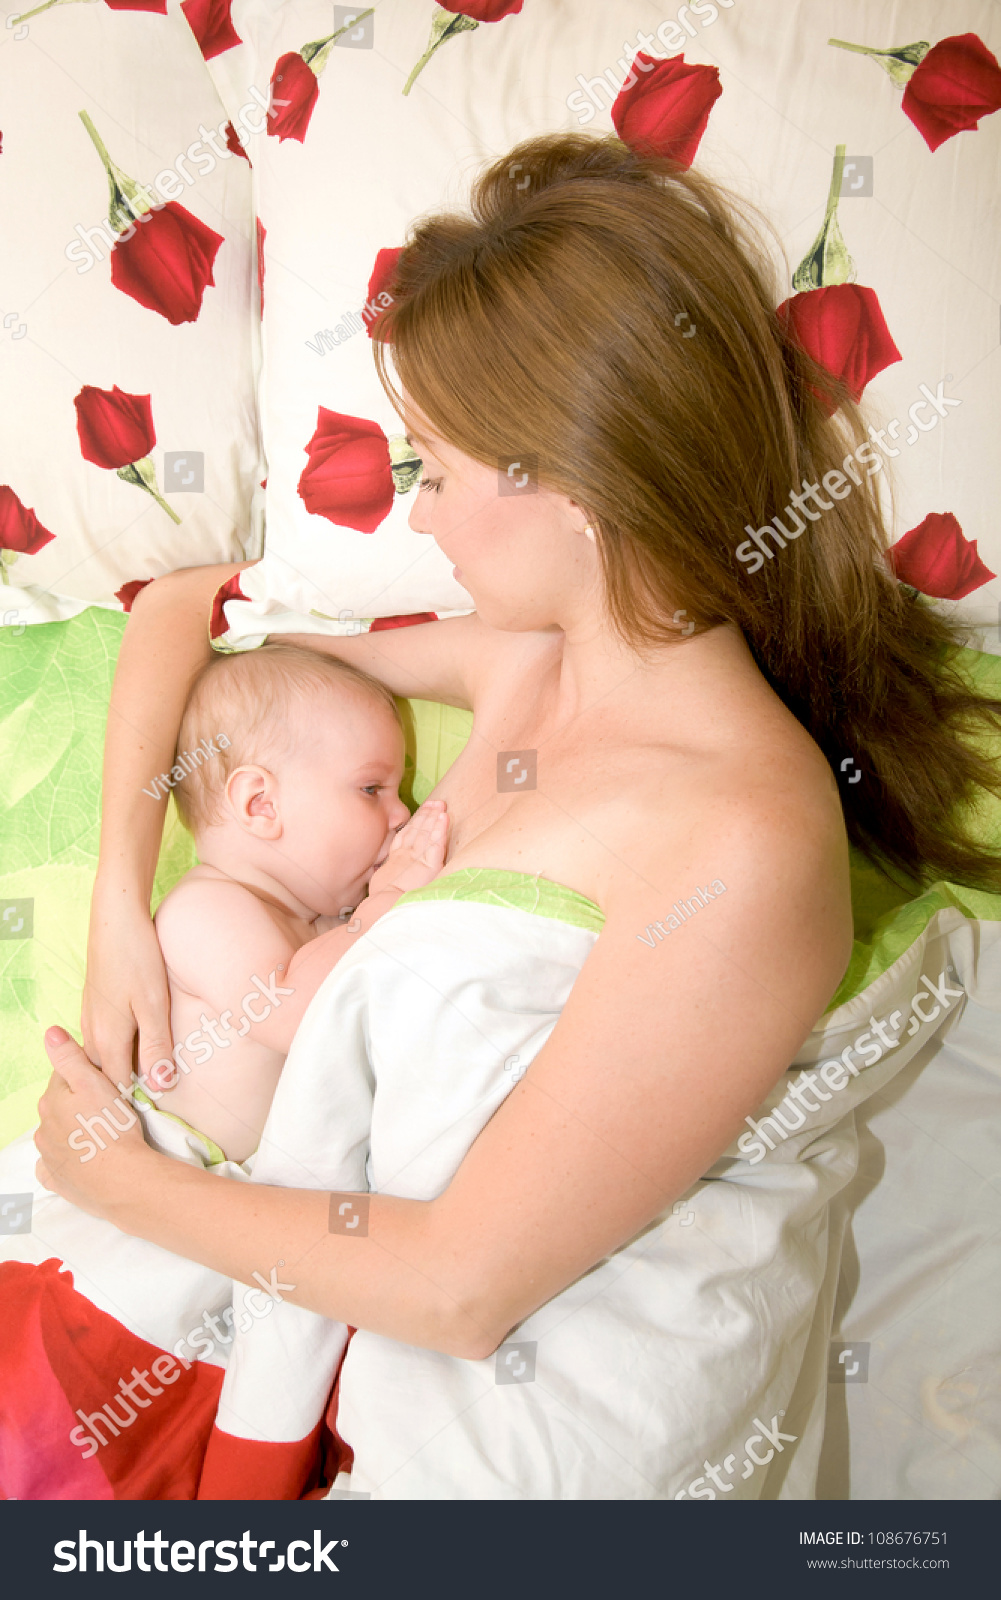 Mother is breast feeding baby in bed Mother's love Bedding has a pattern of red roses